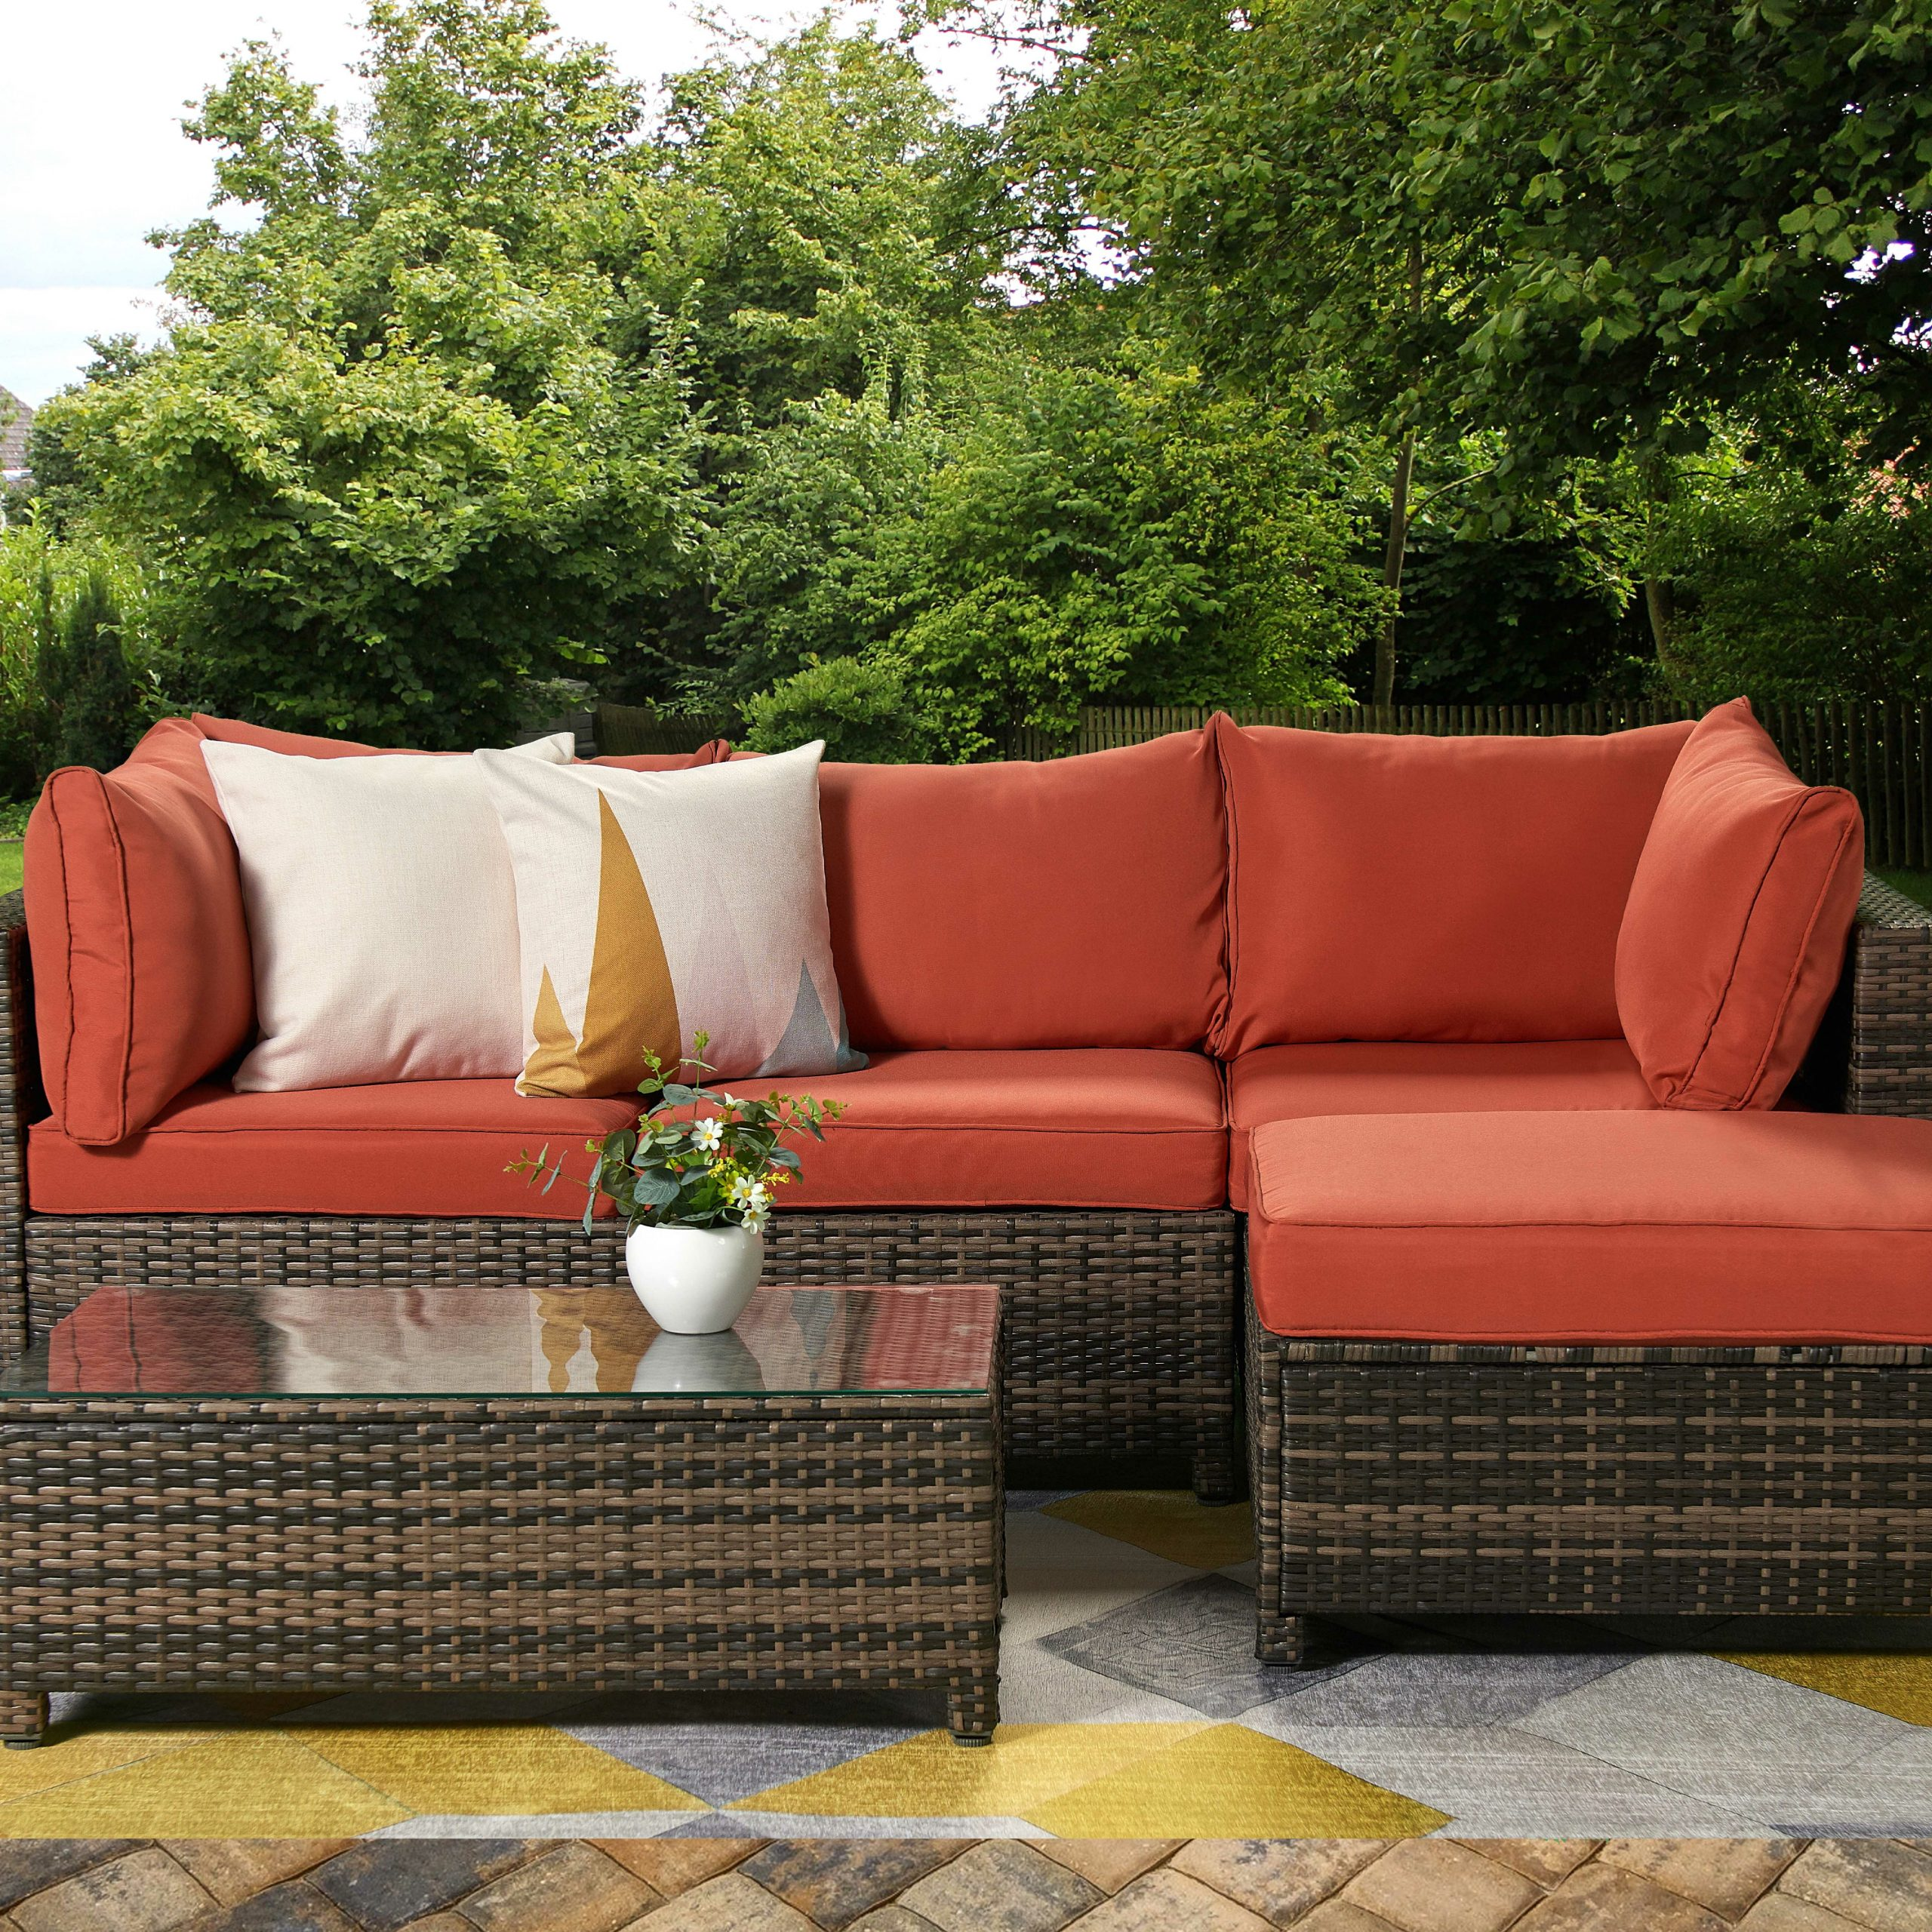 Ivy Bronx Roni Patio Sectional With Cushions & Reviews With Latest Burruss Patio Sectionals With Cushions (View 12 of 25)